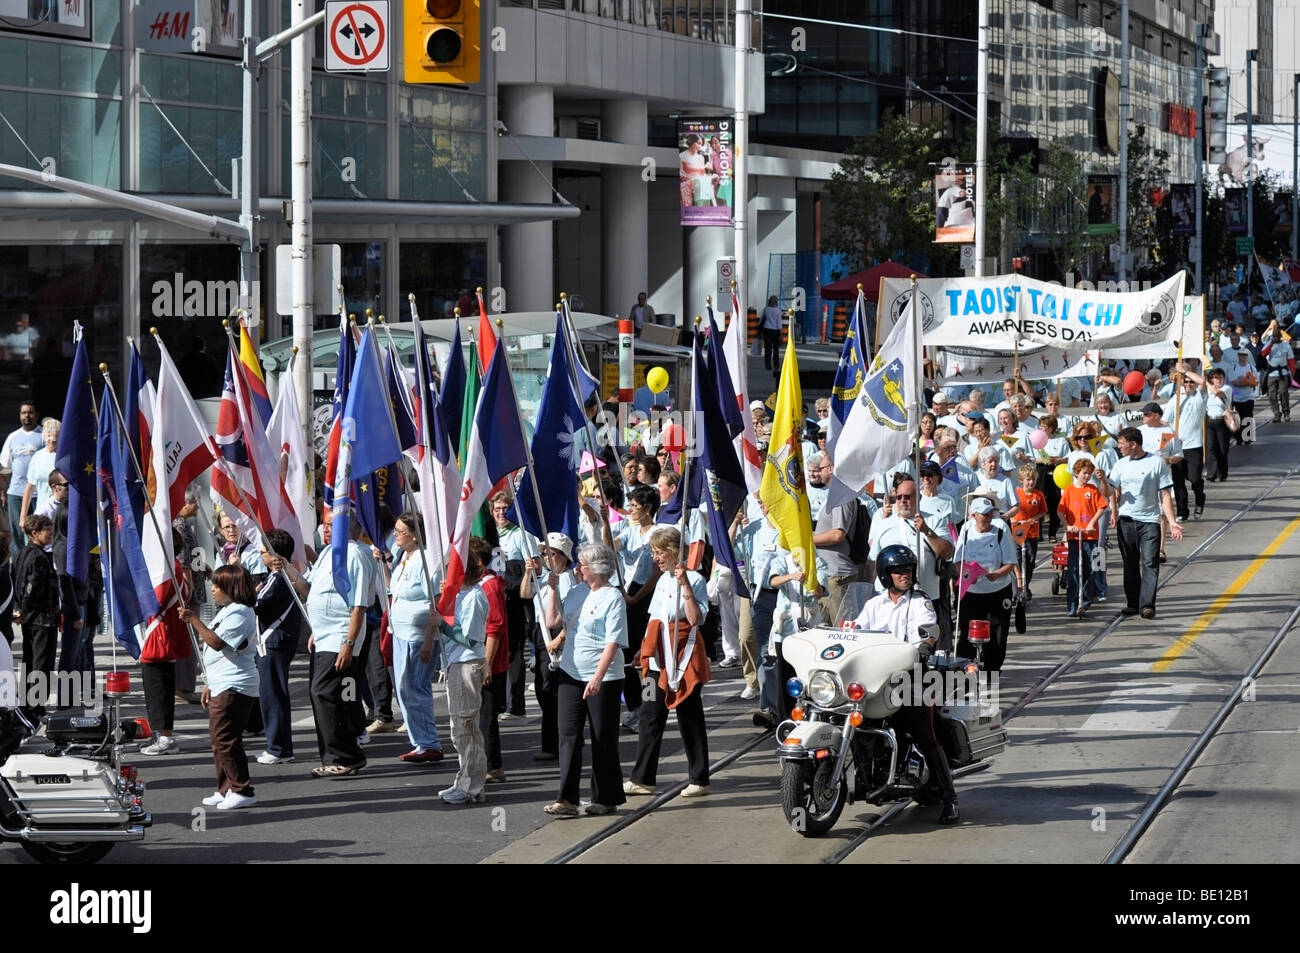 Taoist Tai Chi Awareness Day - March/Parade, Toronto, Ontario, Canada - 2009 - Stock Image